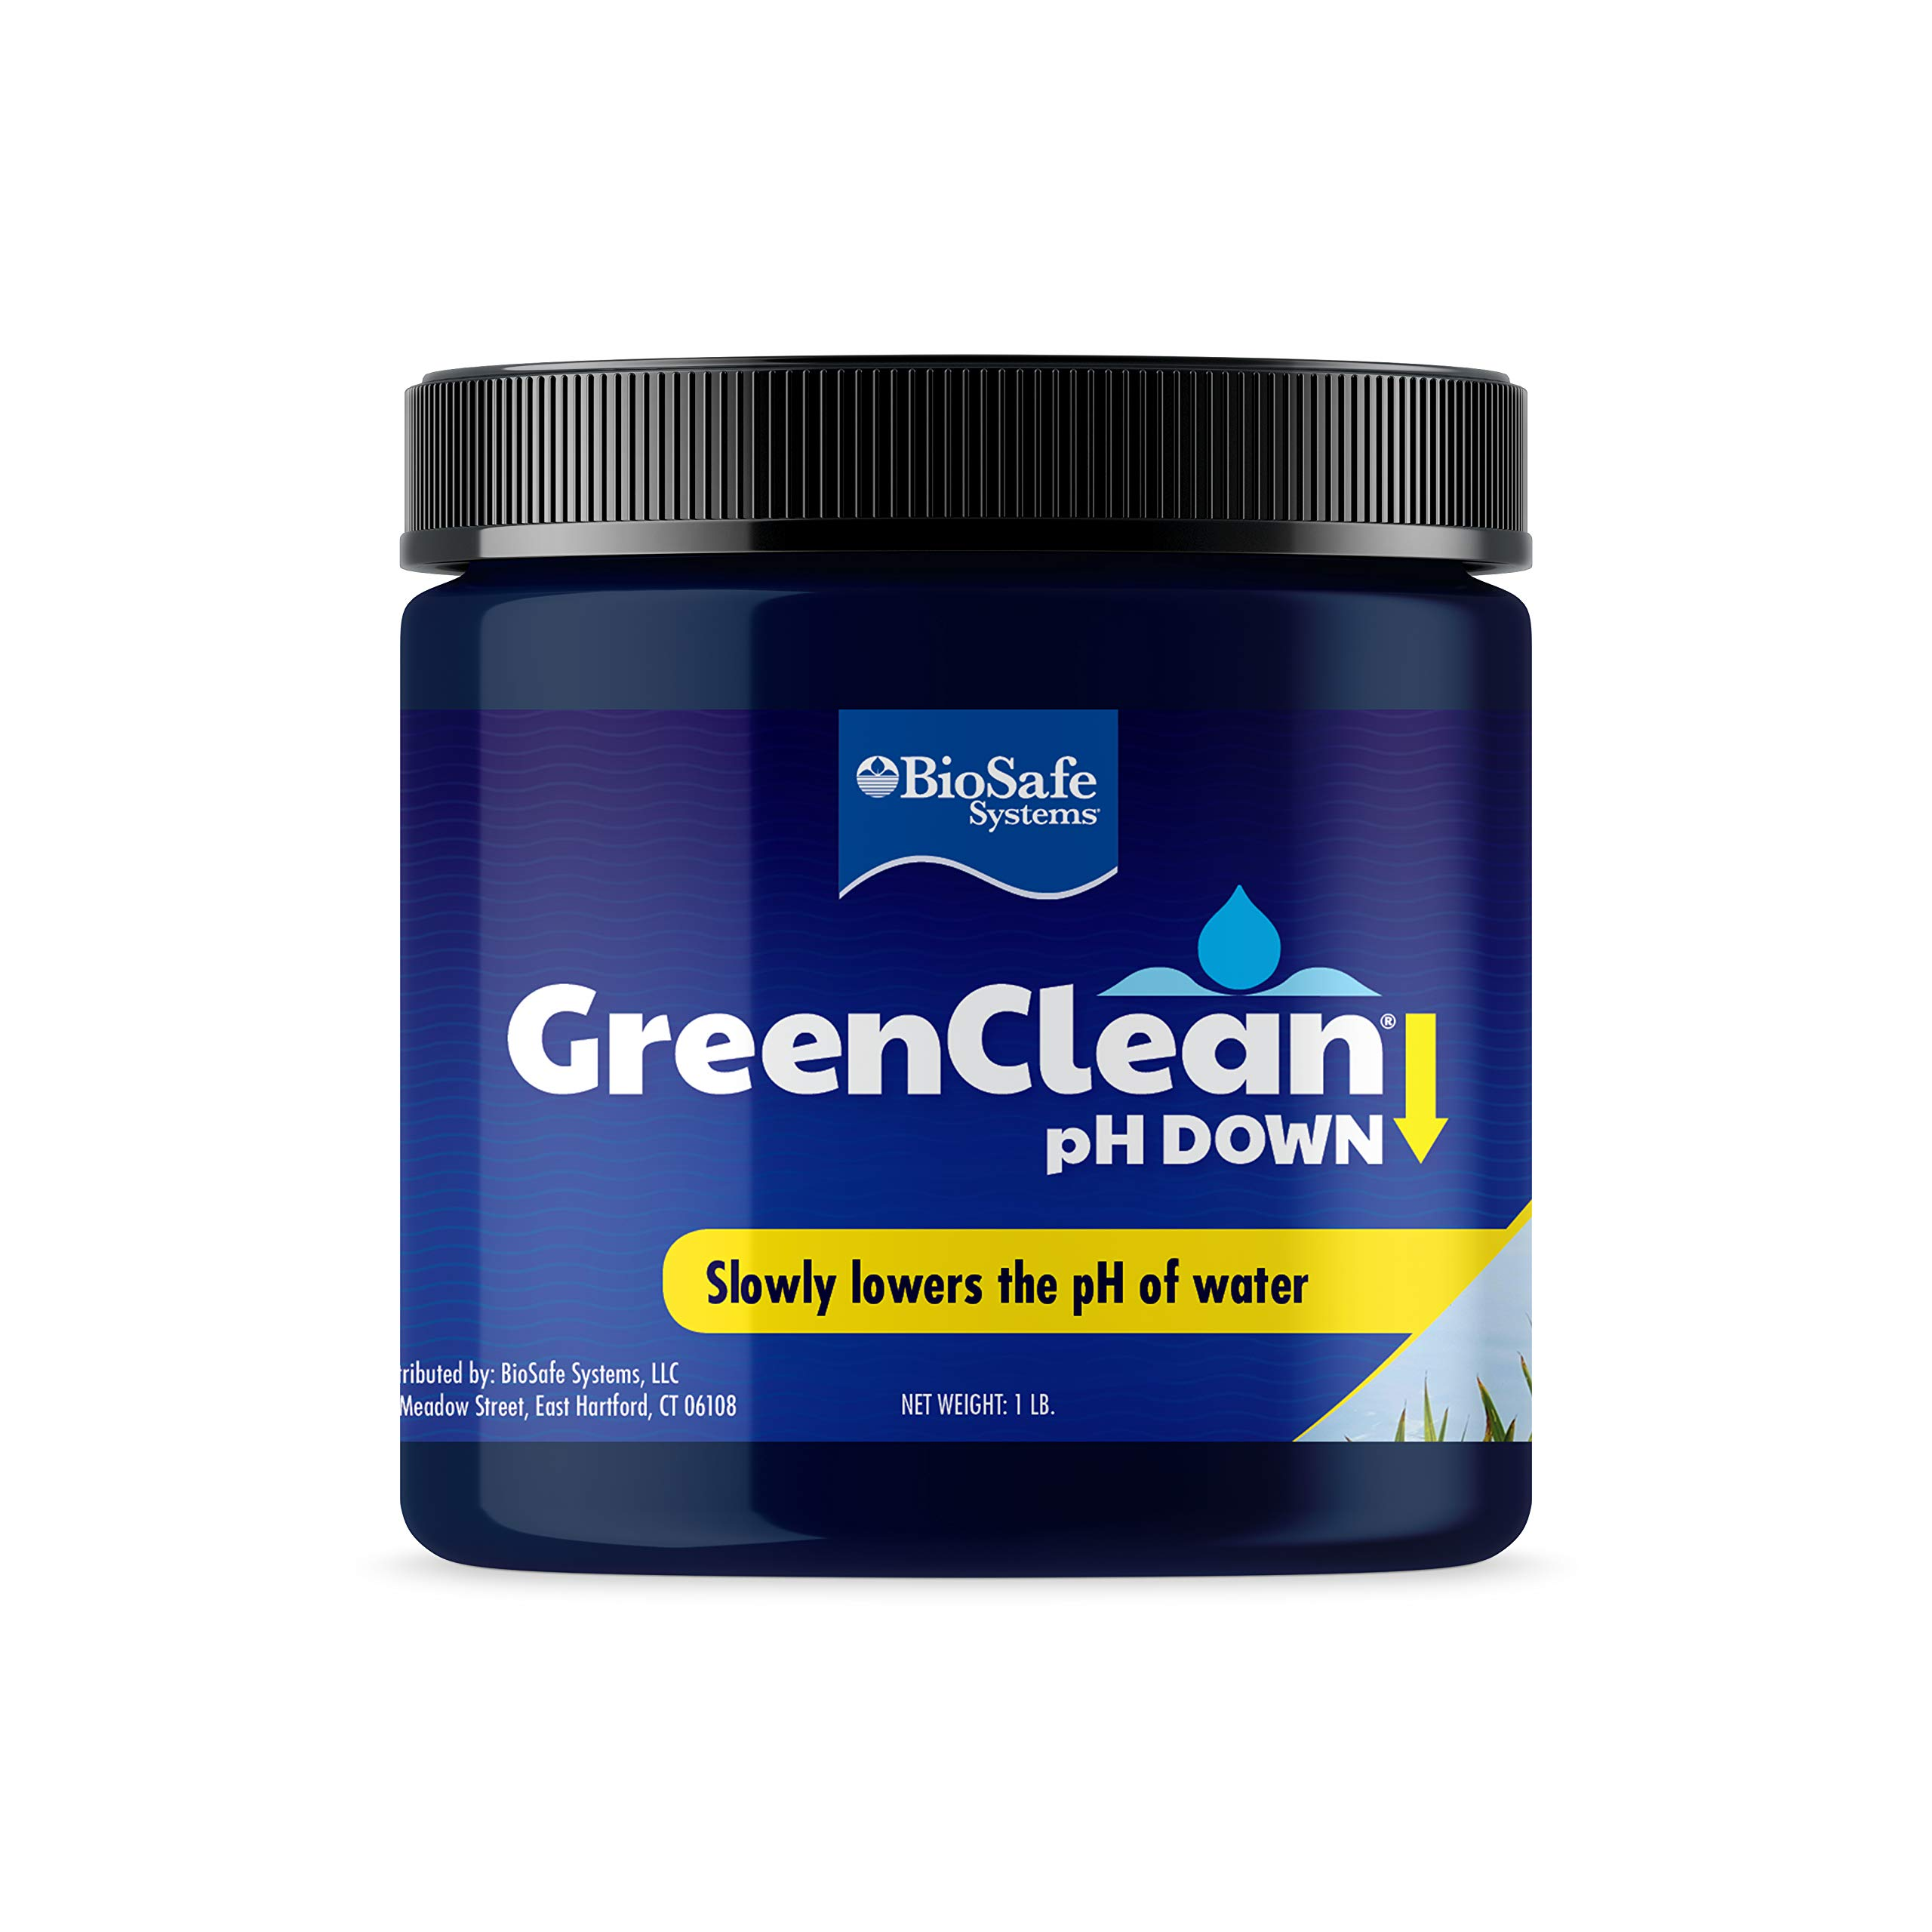 GreenClean pH DOWN Granular - 1 lb - pH Adjuster for Koi Ponds and Water Features. Safe for Fish, Plants, Pets and Wildlife.